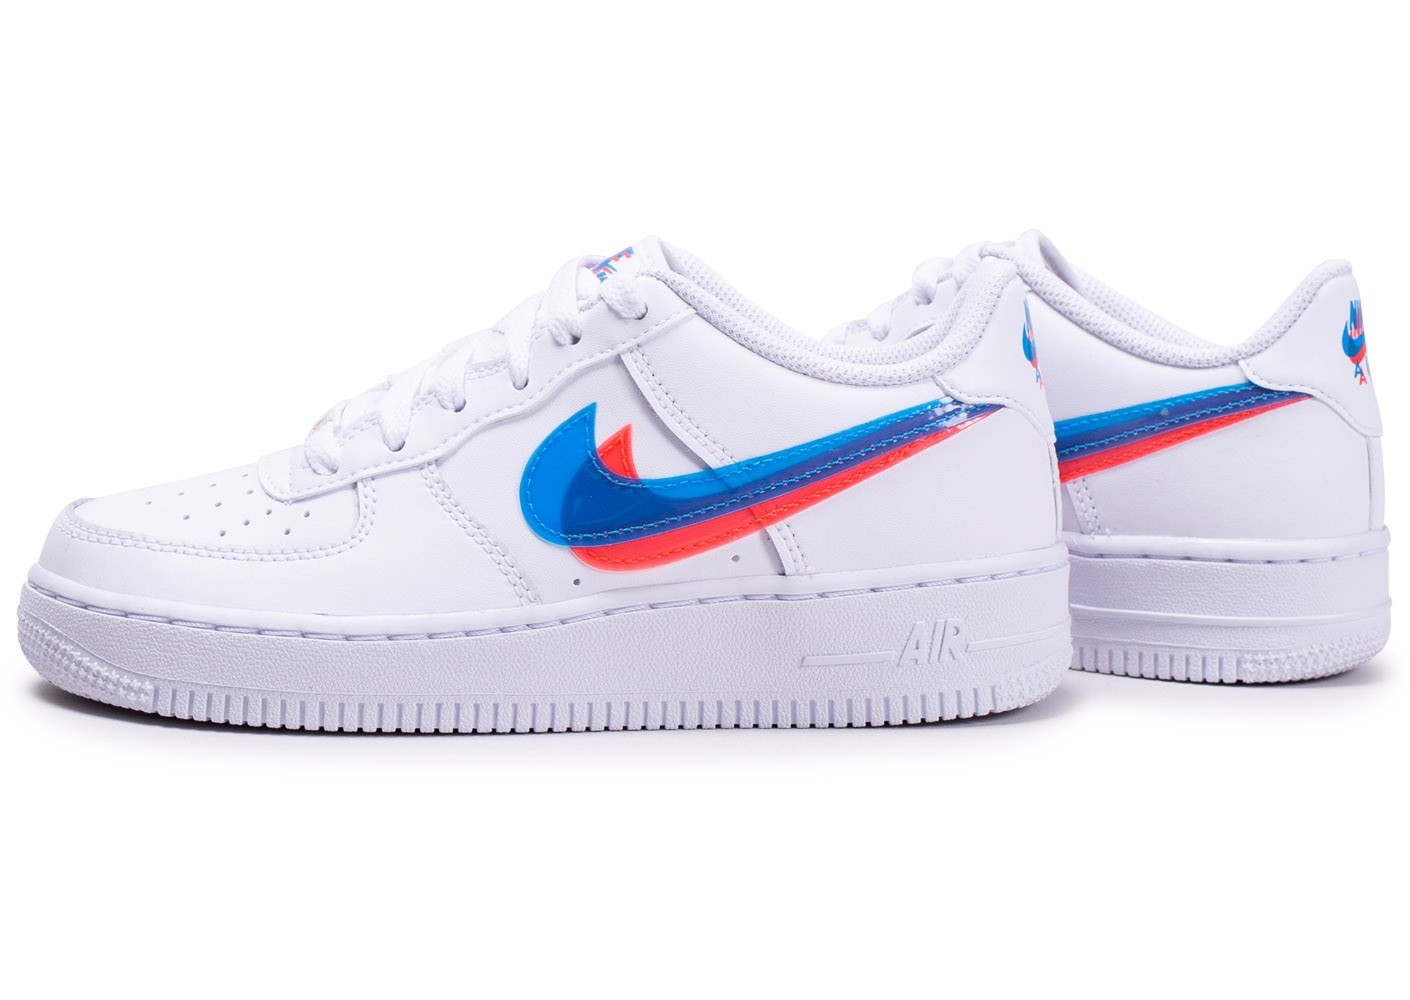 Nike Air Force 1 LV8 Low 3D blanche junior Chaussures